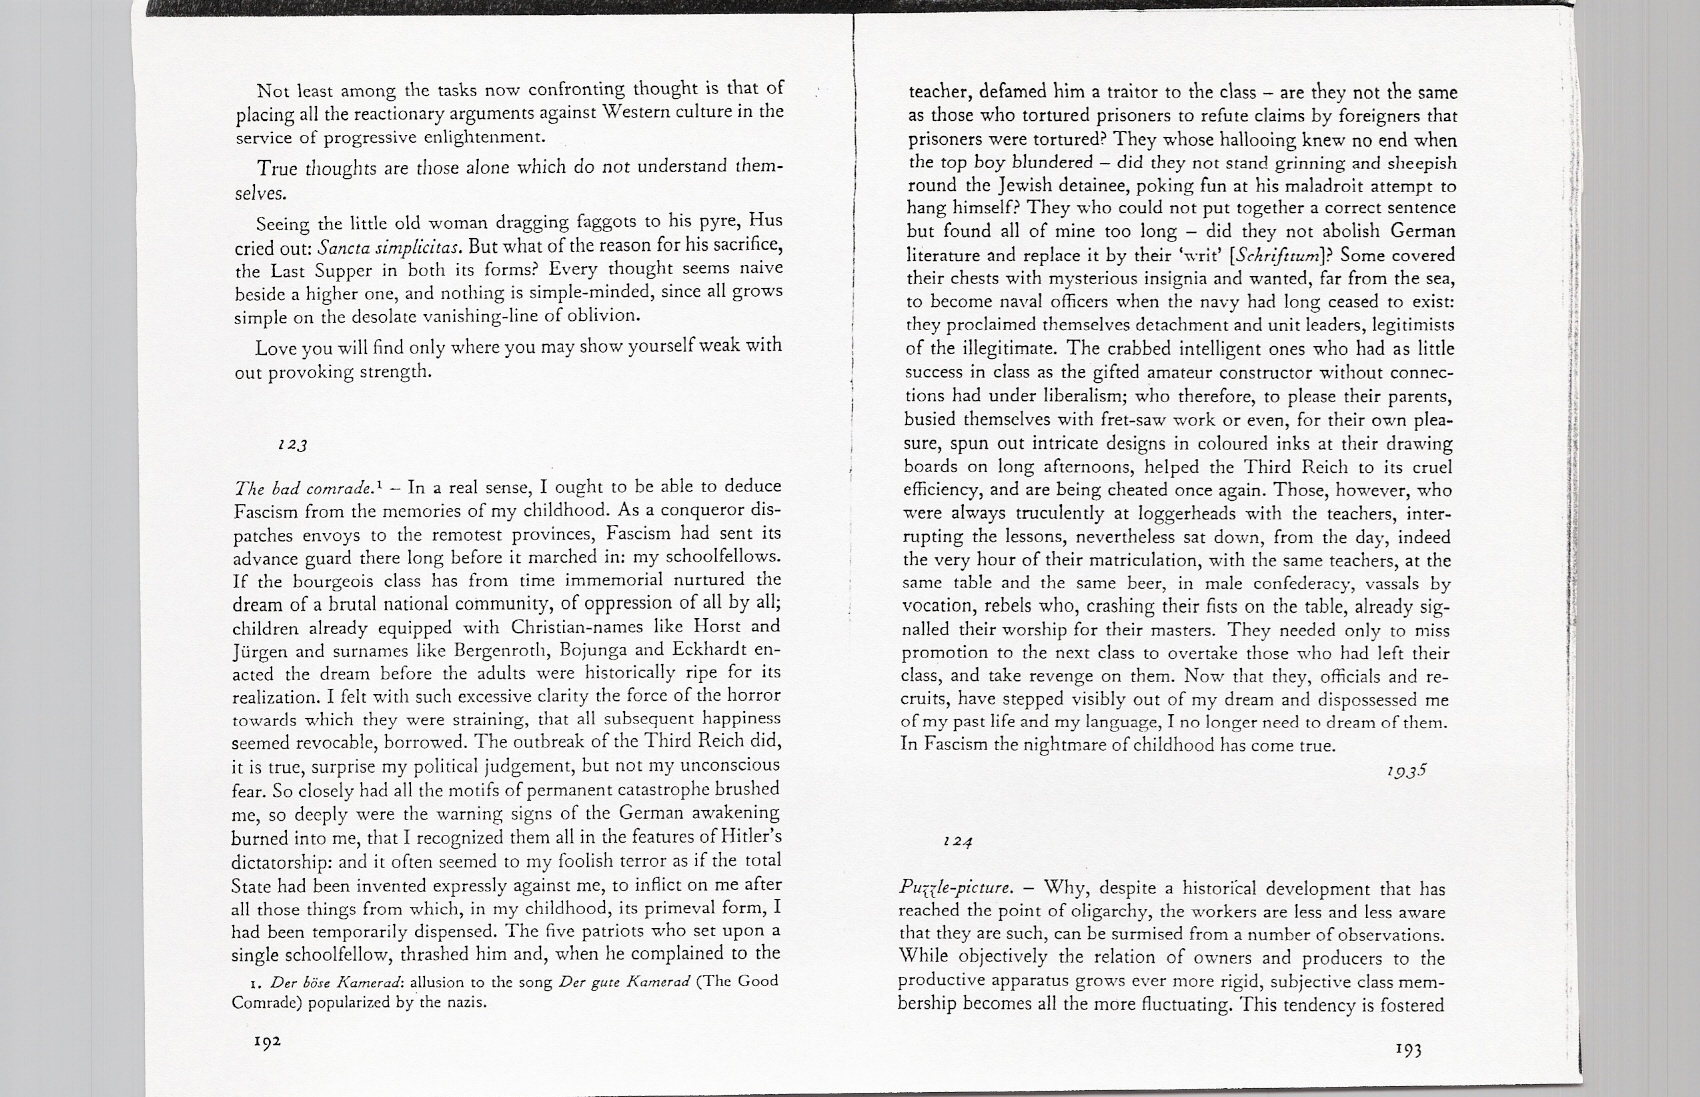 a literary analysis of letter from birmingham jail by martin luther king Letter from a birmingham jail [king, jr] i am sure that none of you would want to rest content with the superficial kind of social analysis that deals merely with effects and does not grapple with underlying causes , martin luther king, jr published in: king.